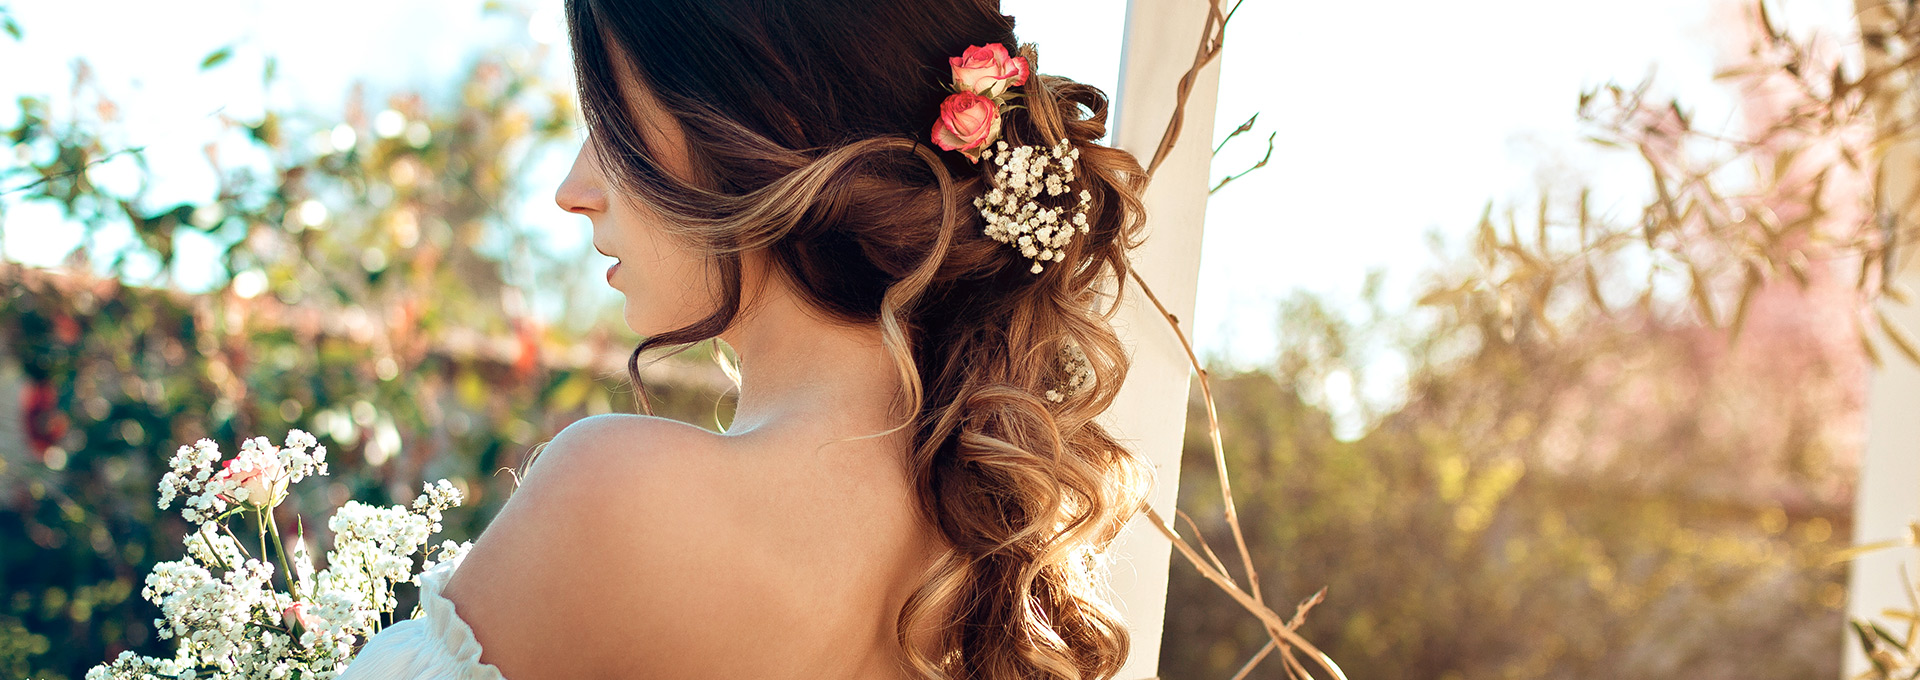 slide photographie coiffure Mariage